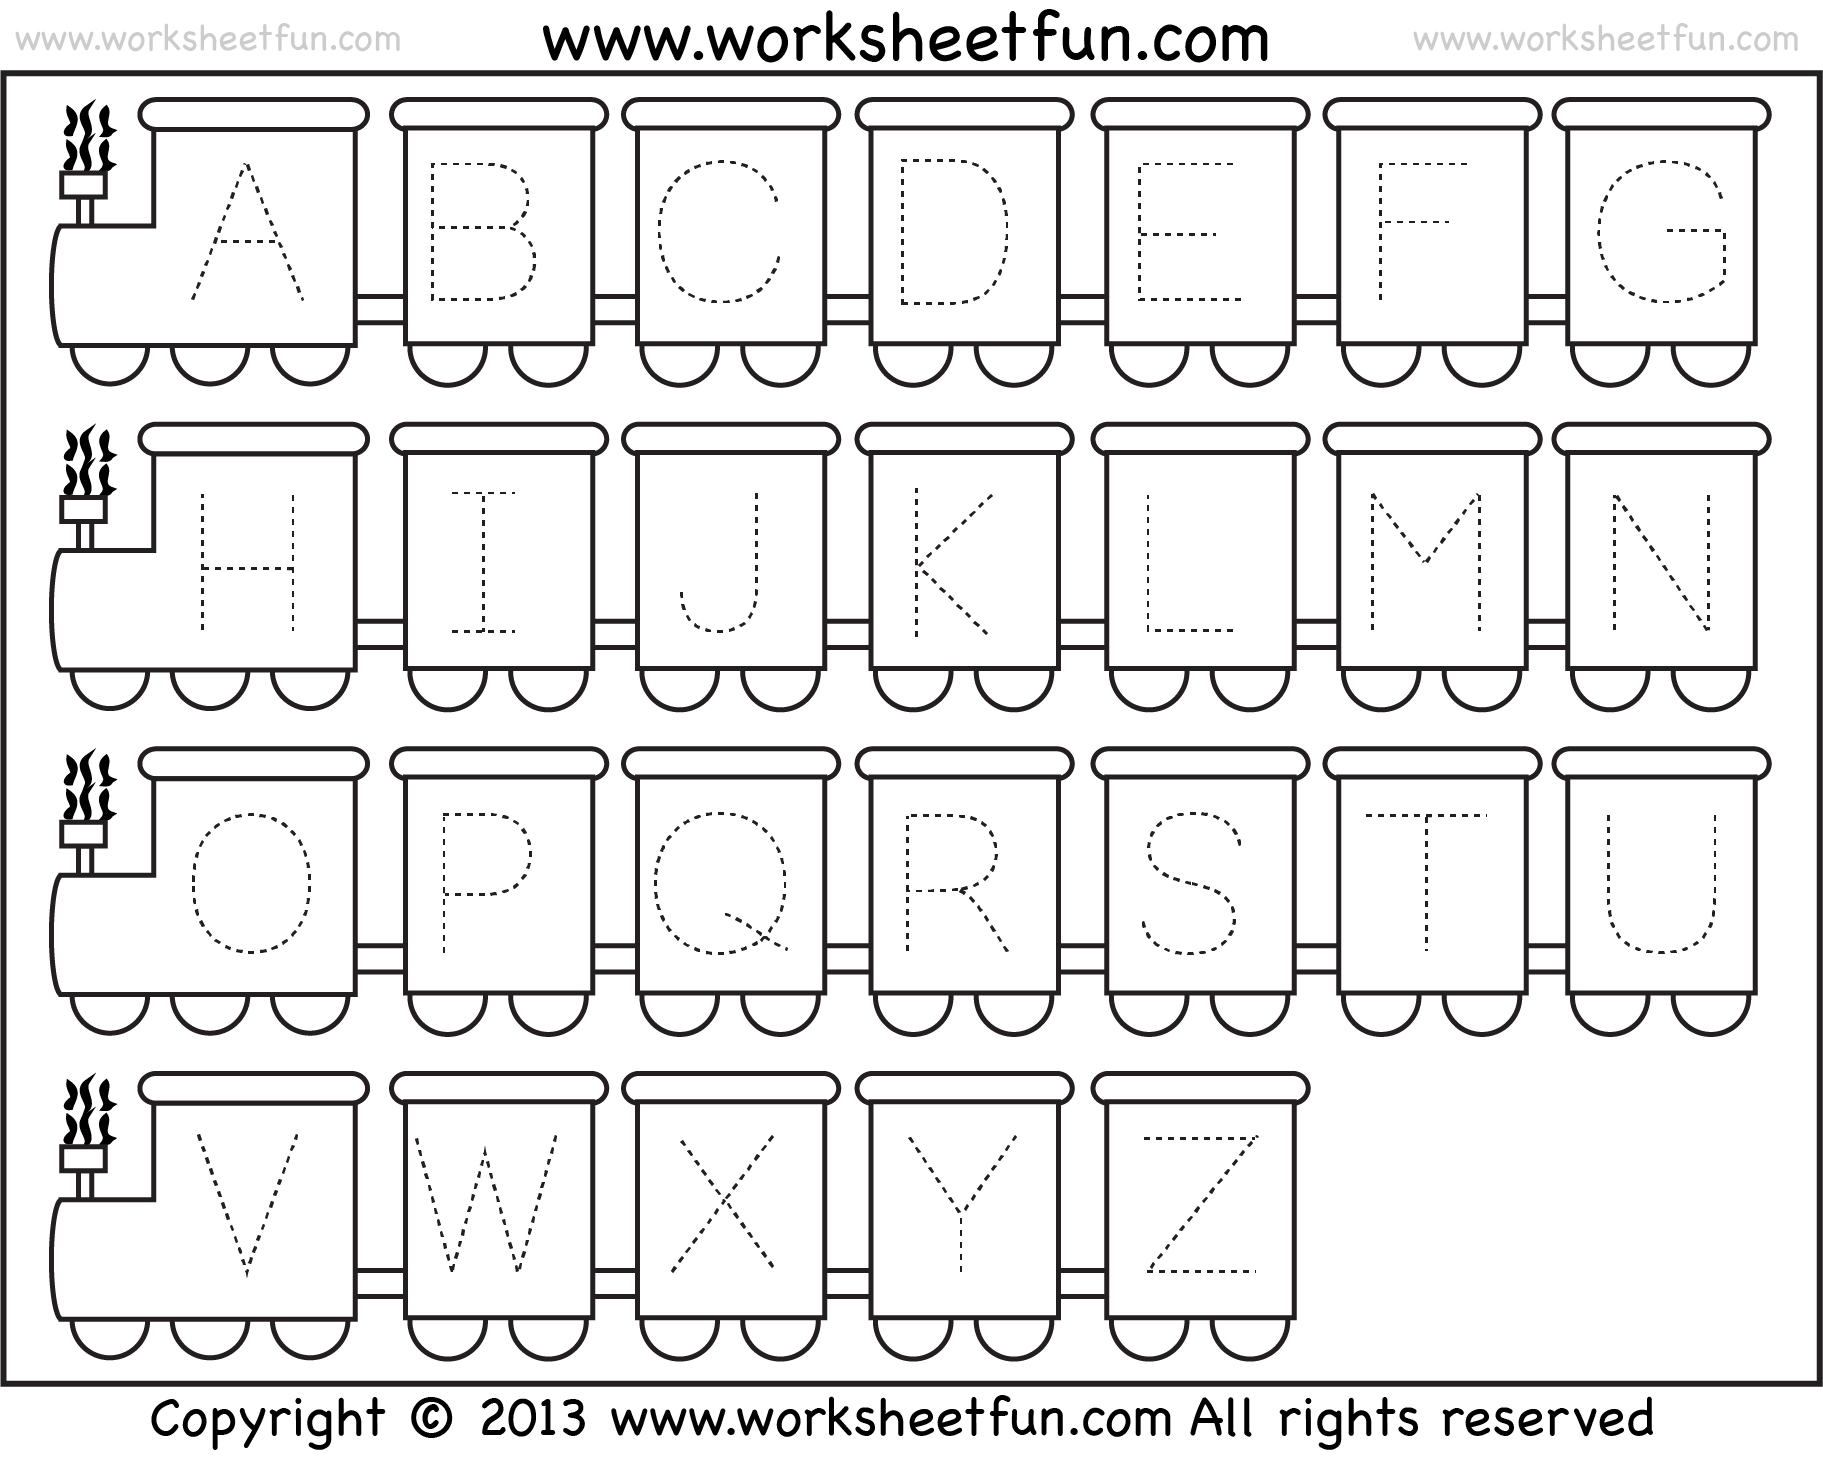 Worksheet Abc Tracing Worksheets For Kindergarten letter tracing worksheet train theme free printable worksheets tracing